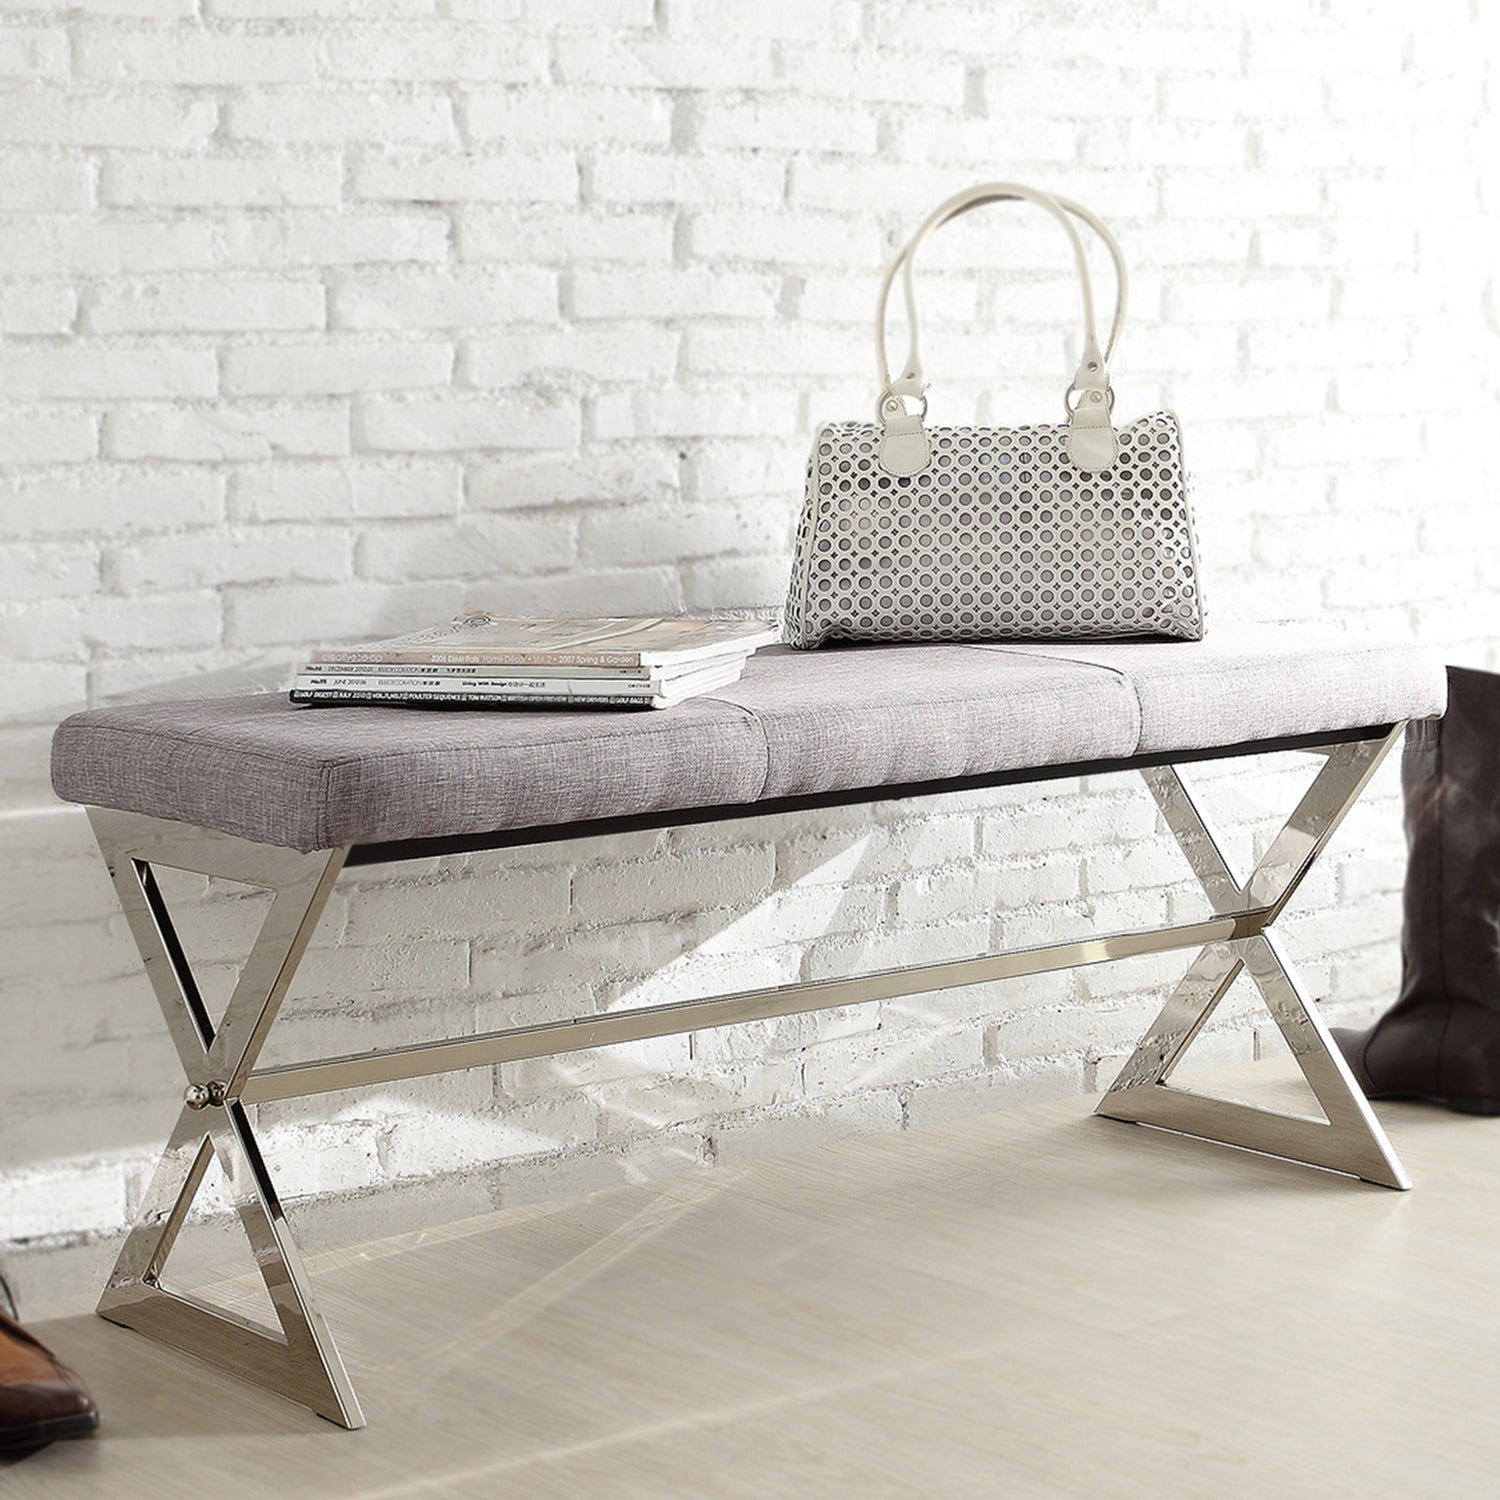 Southport Linen 40-inch Chrome Finish Metal Bench by iNSPIRE Q Bold - Free  Shipping Today - Overstock.com - 15502644